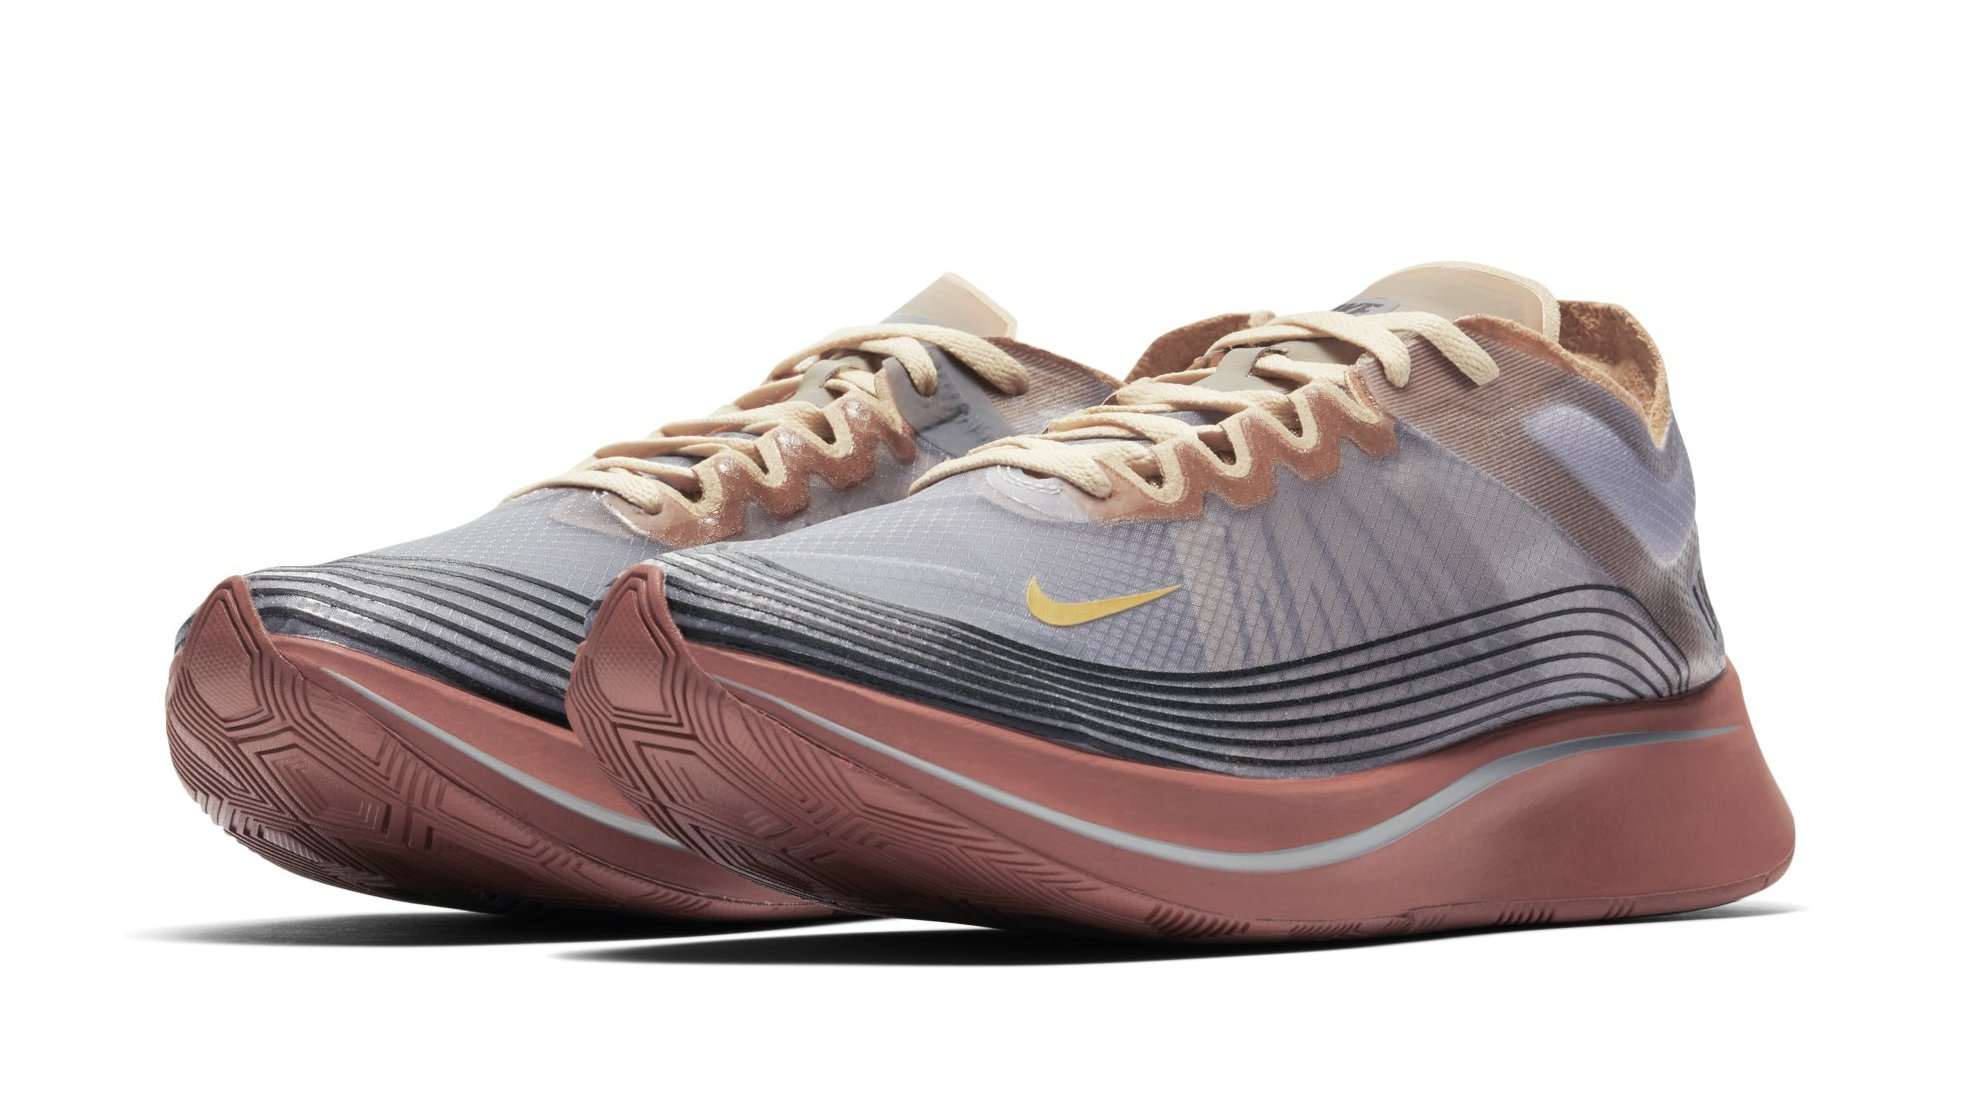 6ad1d98cb79a9 Nike has a new Zoom Fly SP colorway designed for London releasing soon.  Find more details including the release date here.